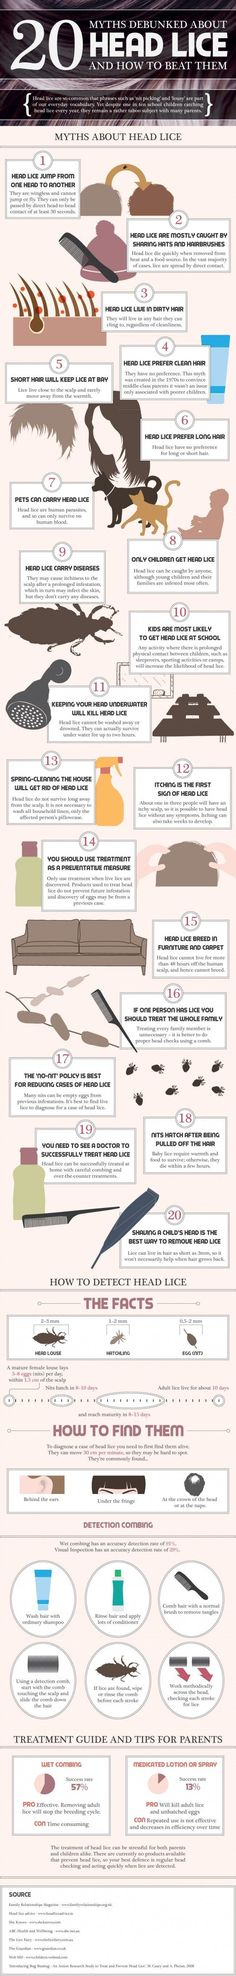 20 Facts About Headlice [Infographic]  For future reference... Hopefully I won't need it!!! #homeschoolingfacts